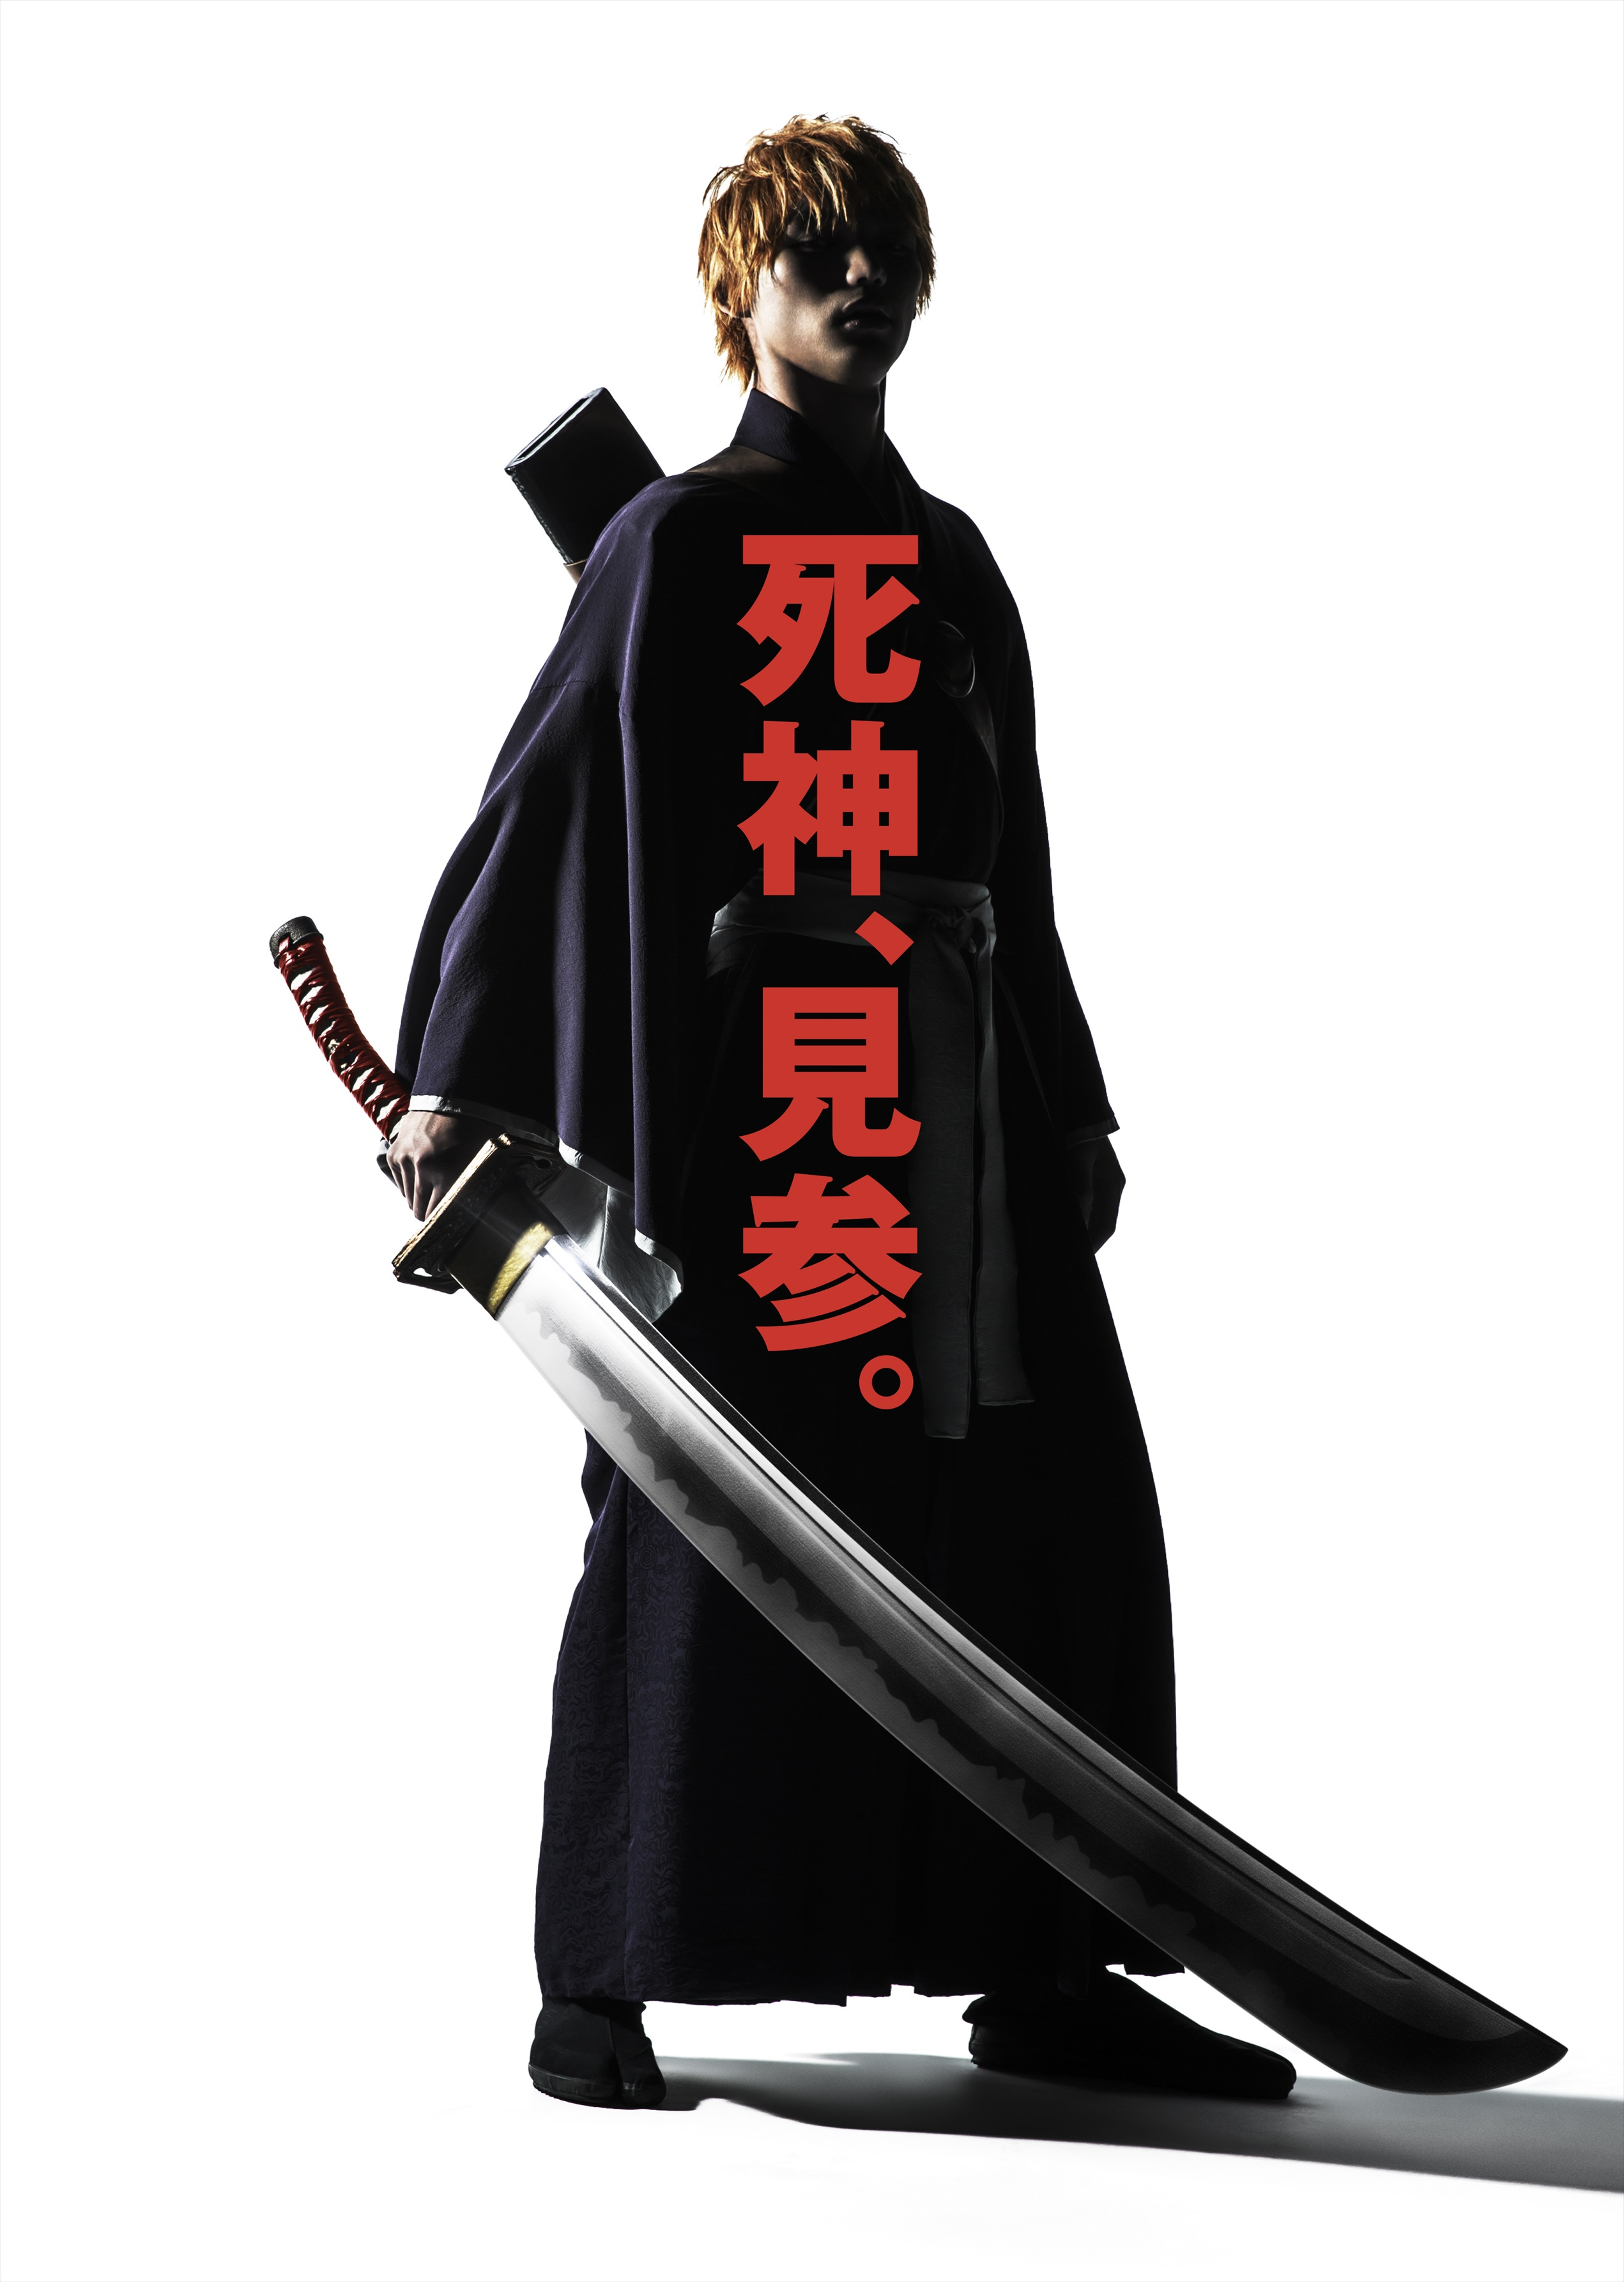 mira-primer-trailer-la-pelicula-live-action-bleach-fighting-hollow-frikigamers.com